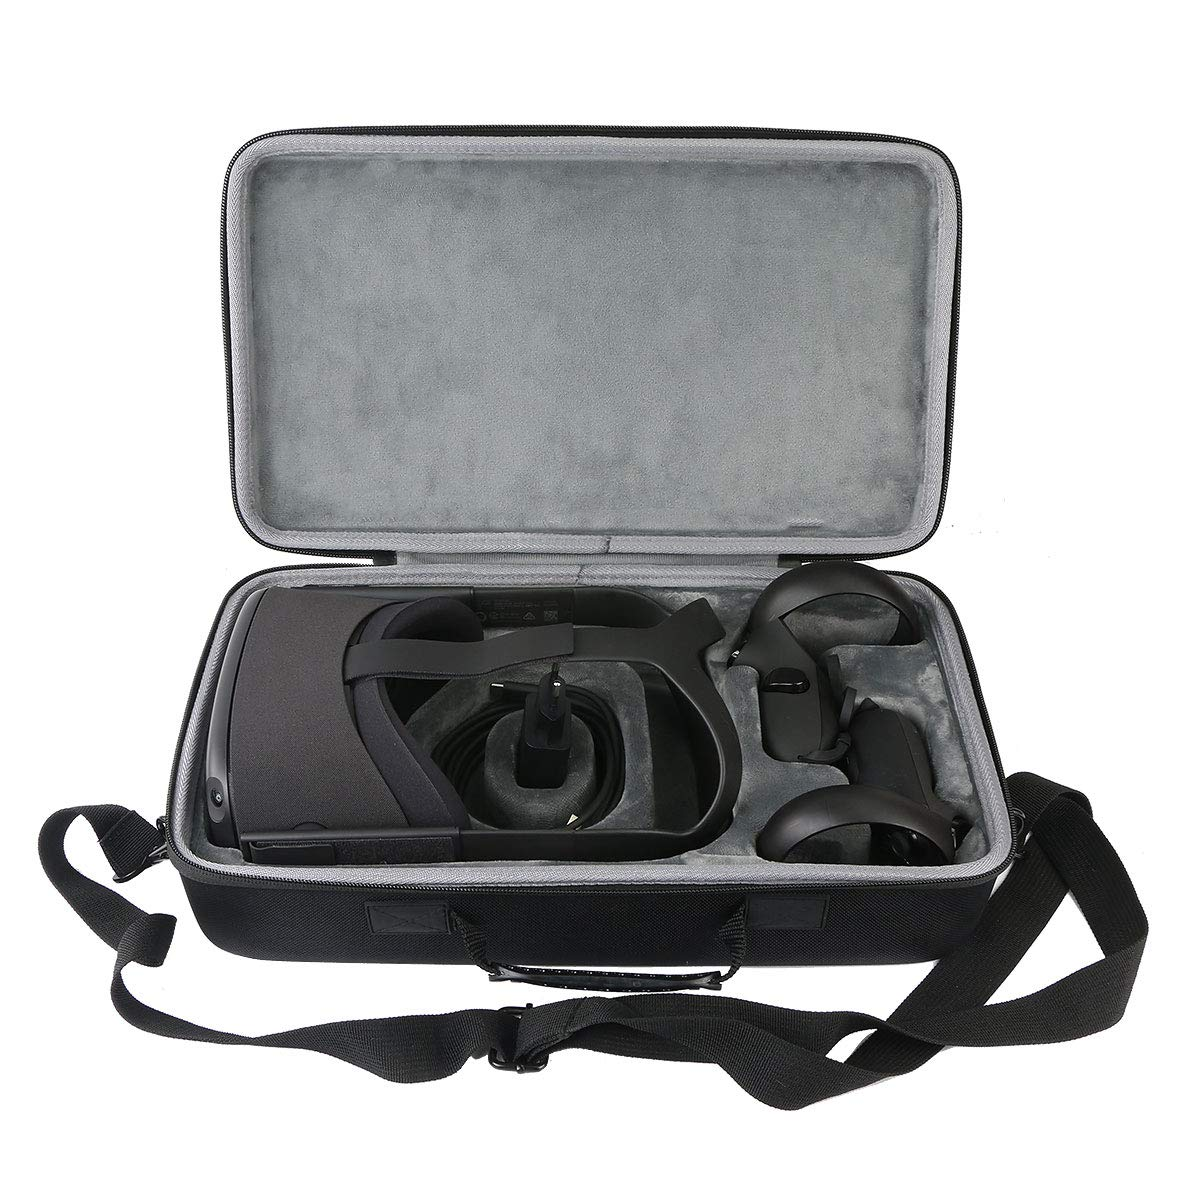 co2crea Hard Travel Case Replacement for Oculus Quest All-in-one VR Gaming Headset by Co2Crea